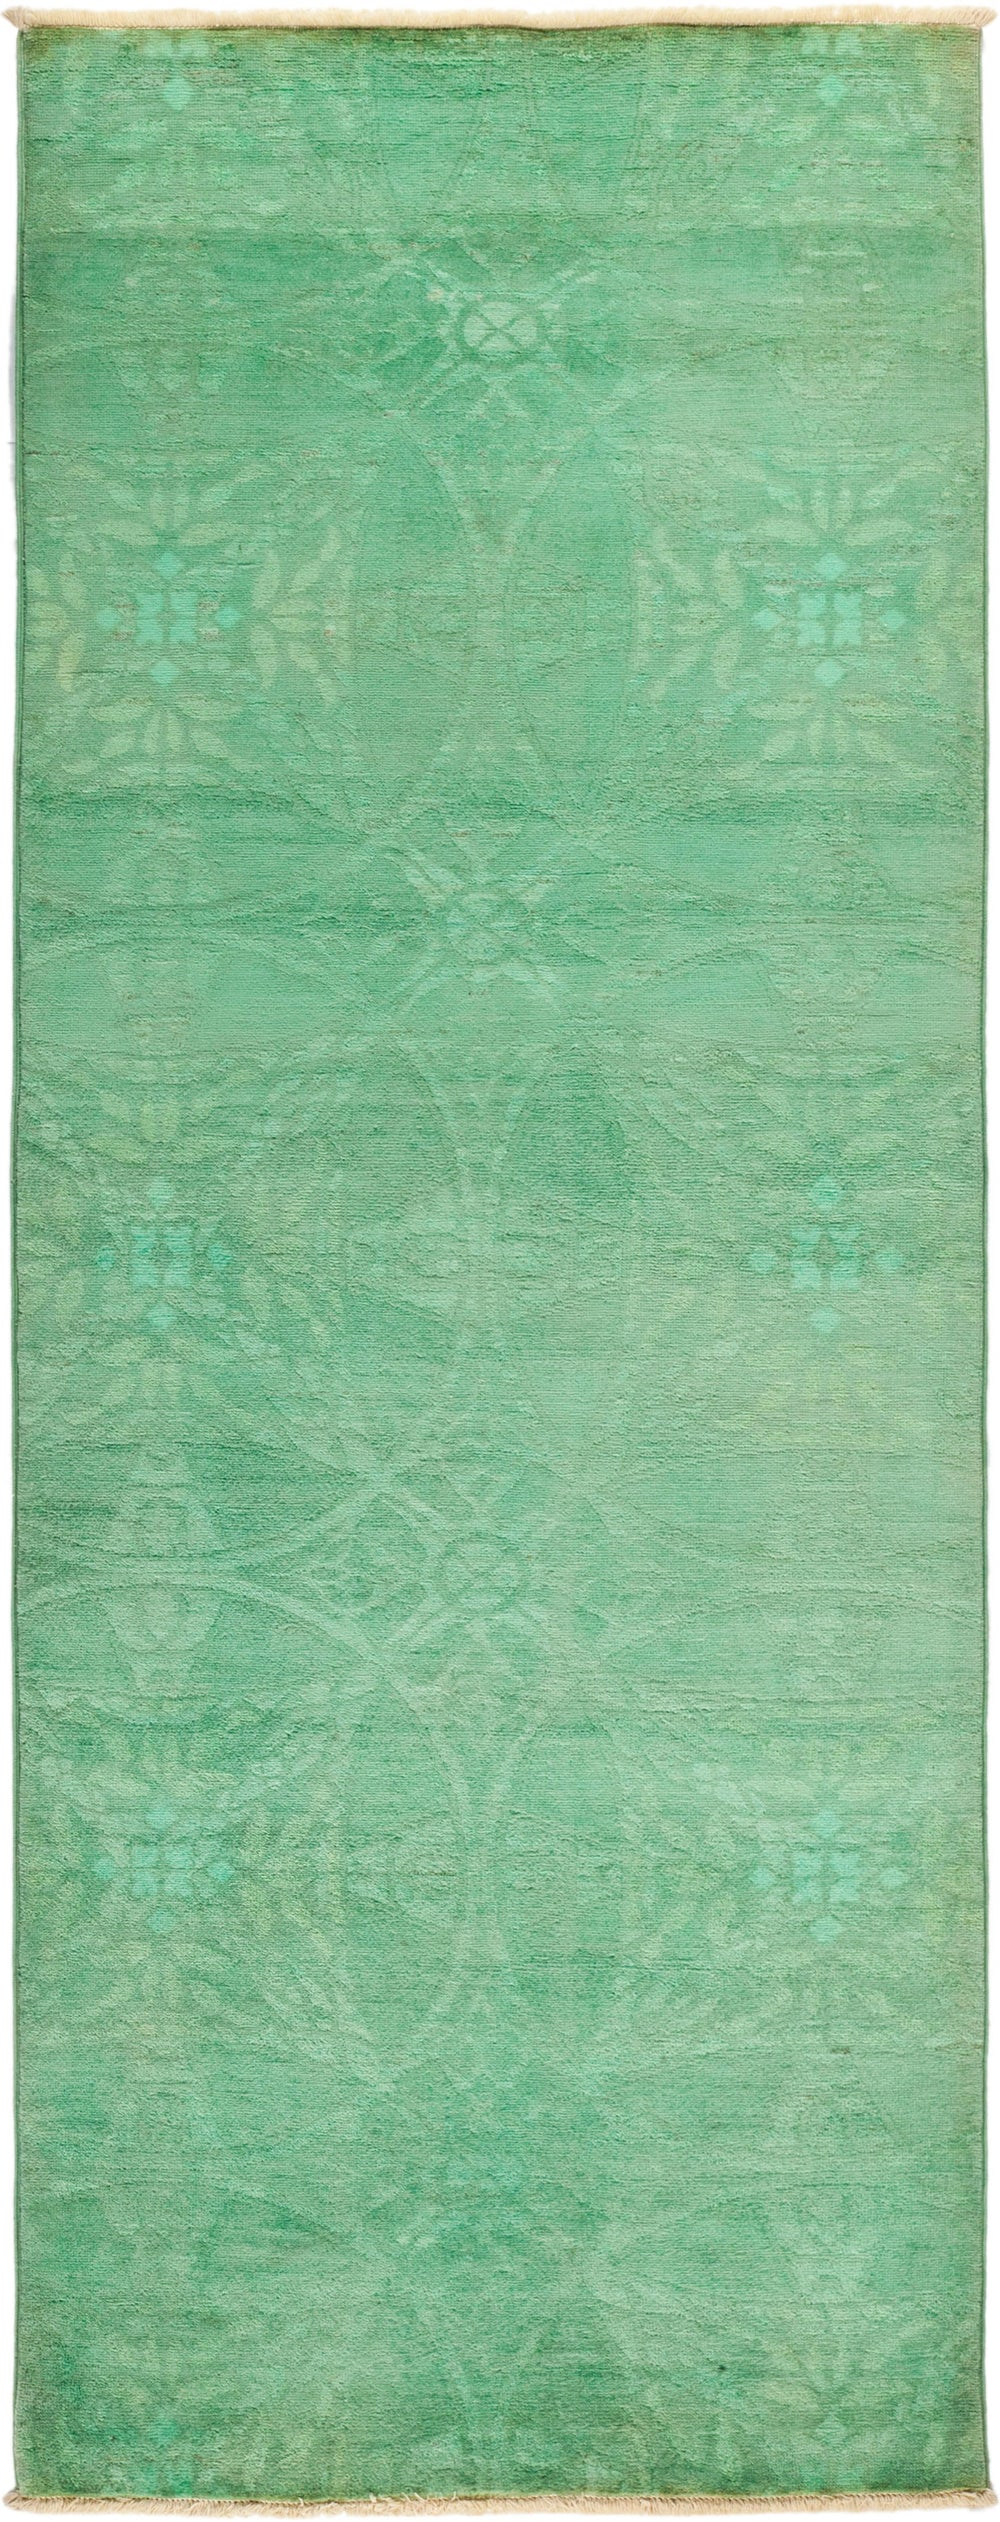 "Vibrance, Green Wool Runner Rug - 3' 1"" x 8' 0"""